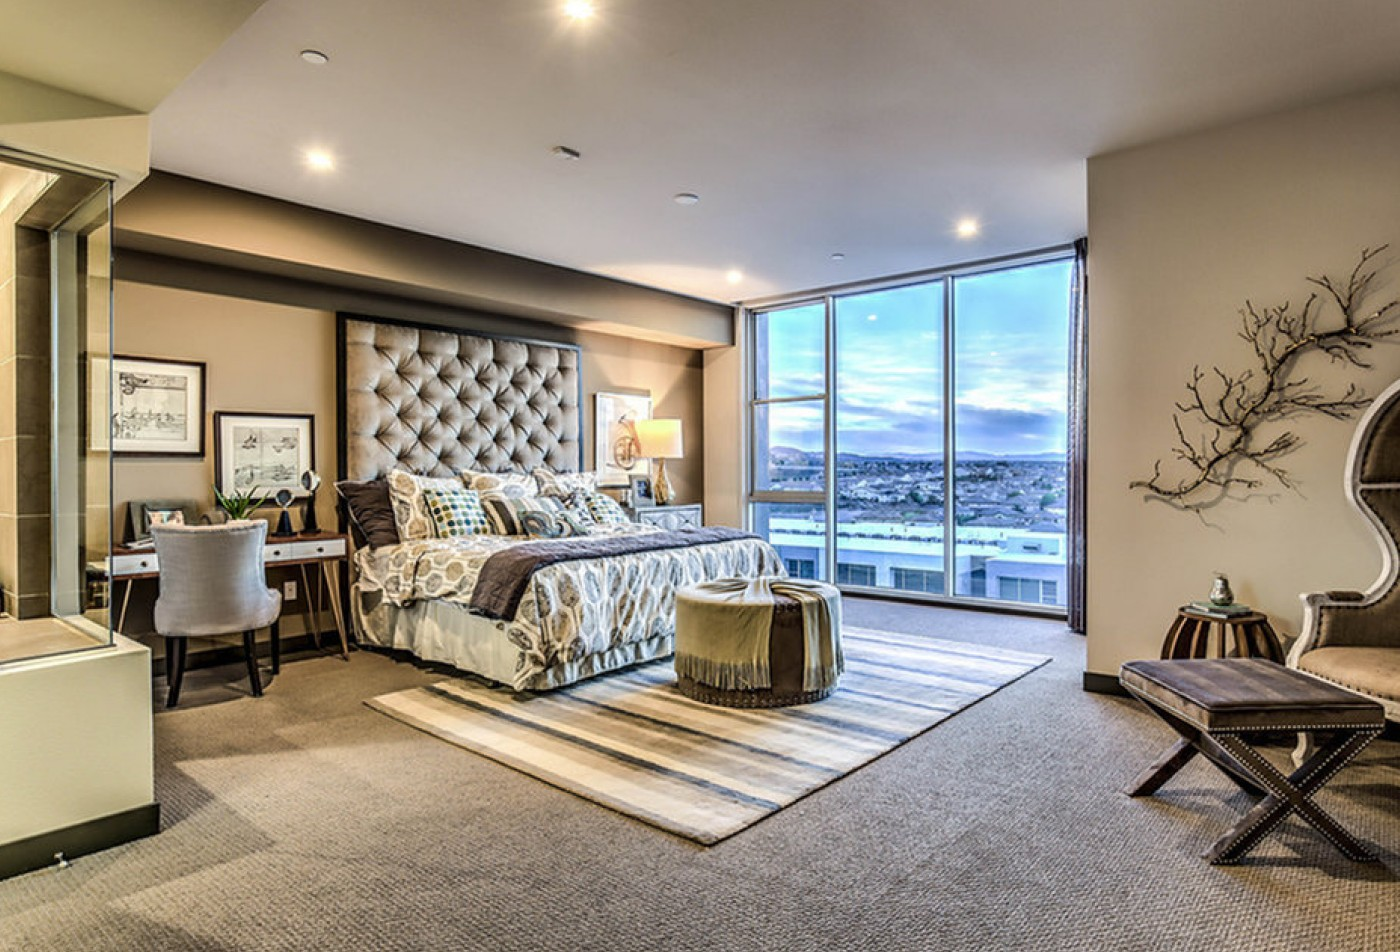 Apartments for rent in henderson nv vantage lofts - One bedroom apartments in henderson nv ...